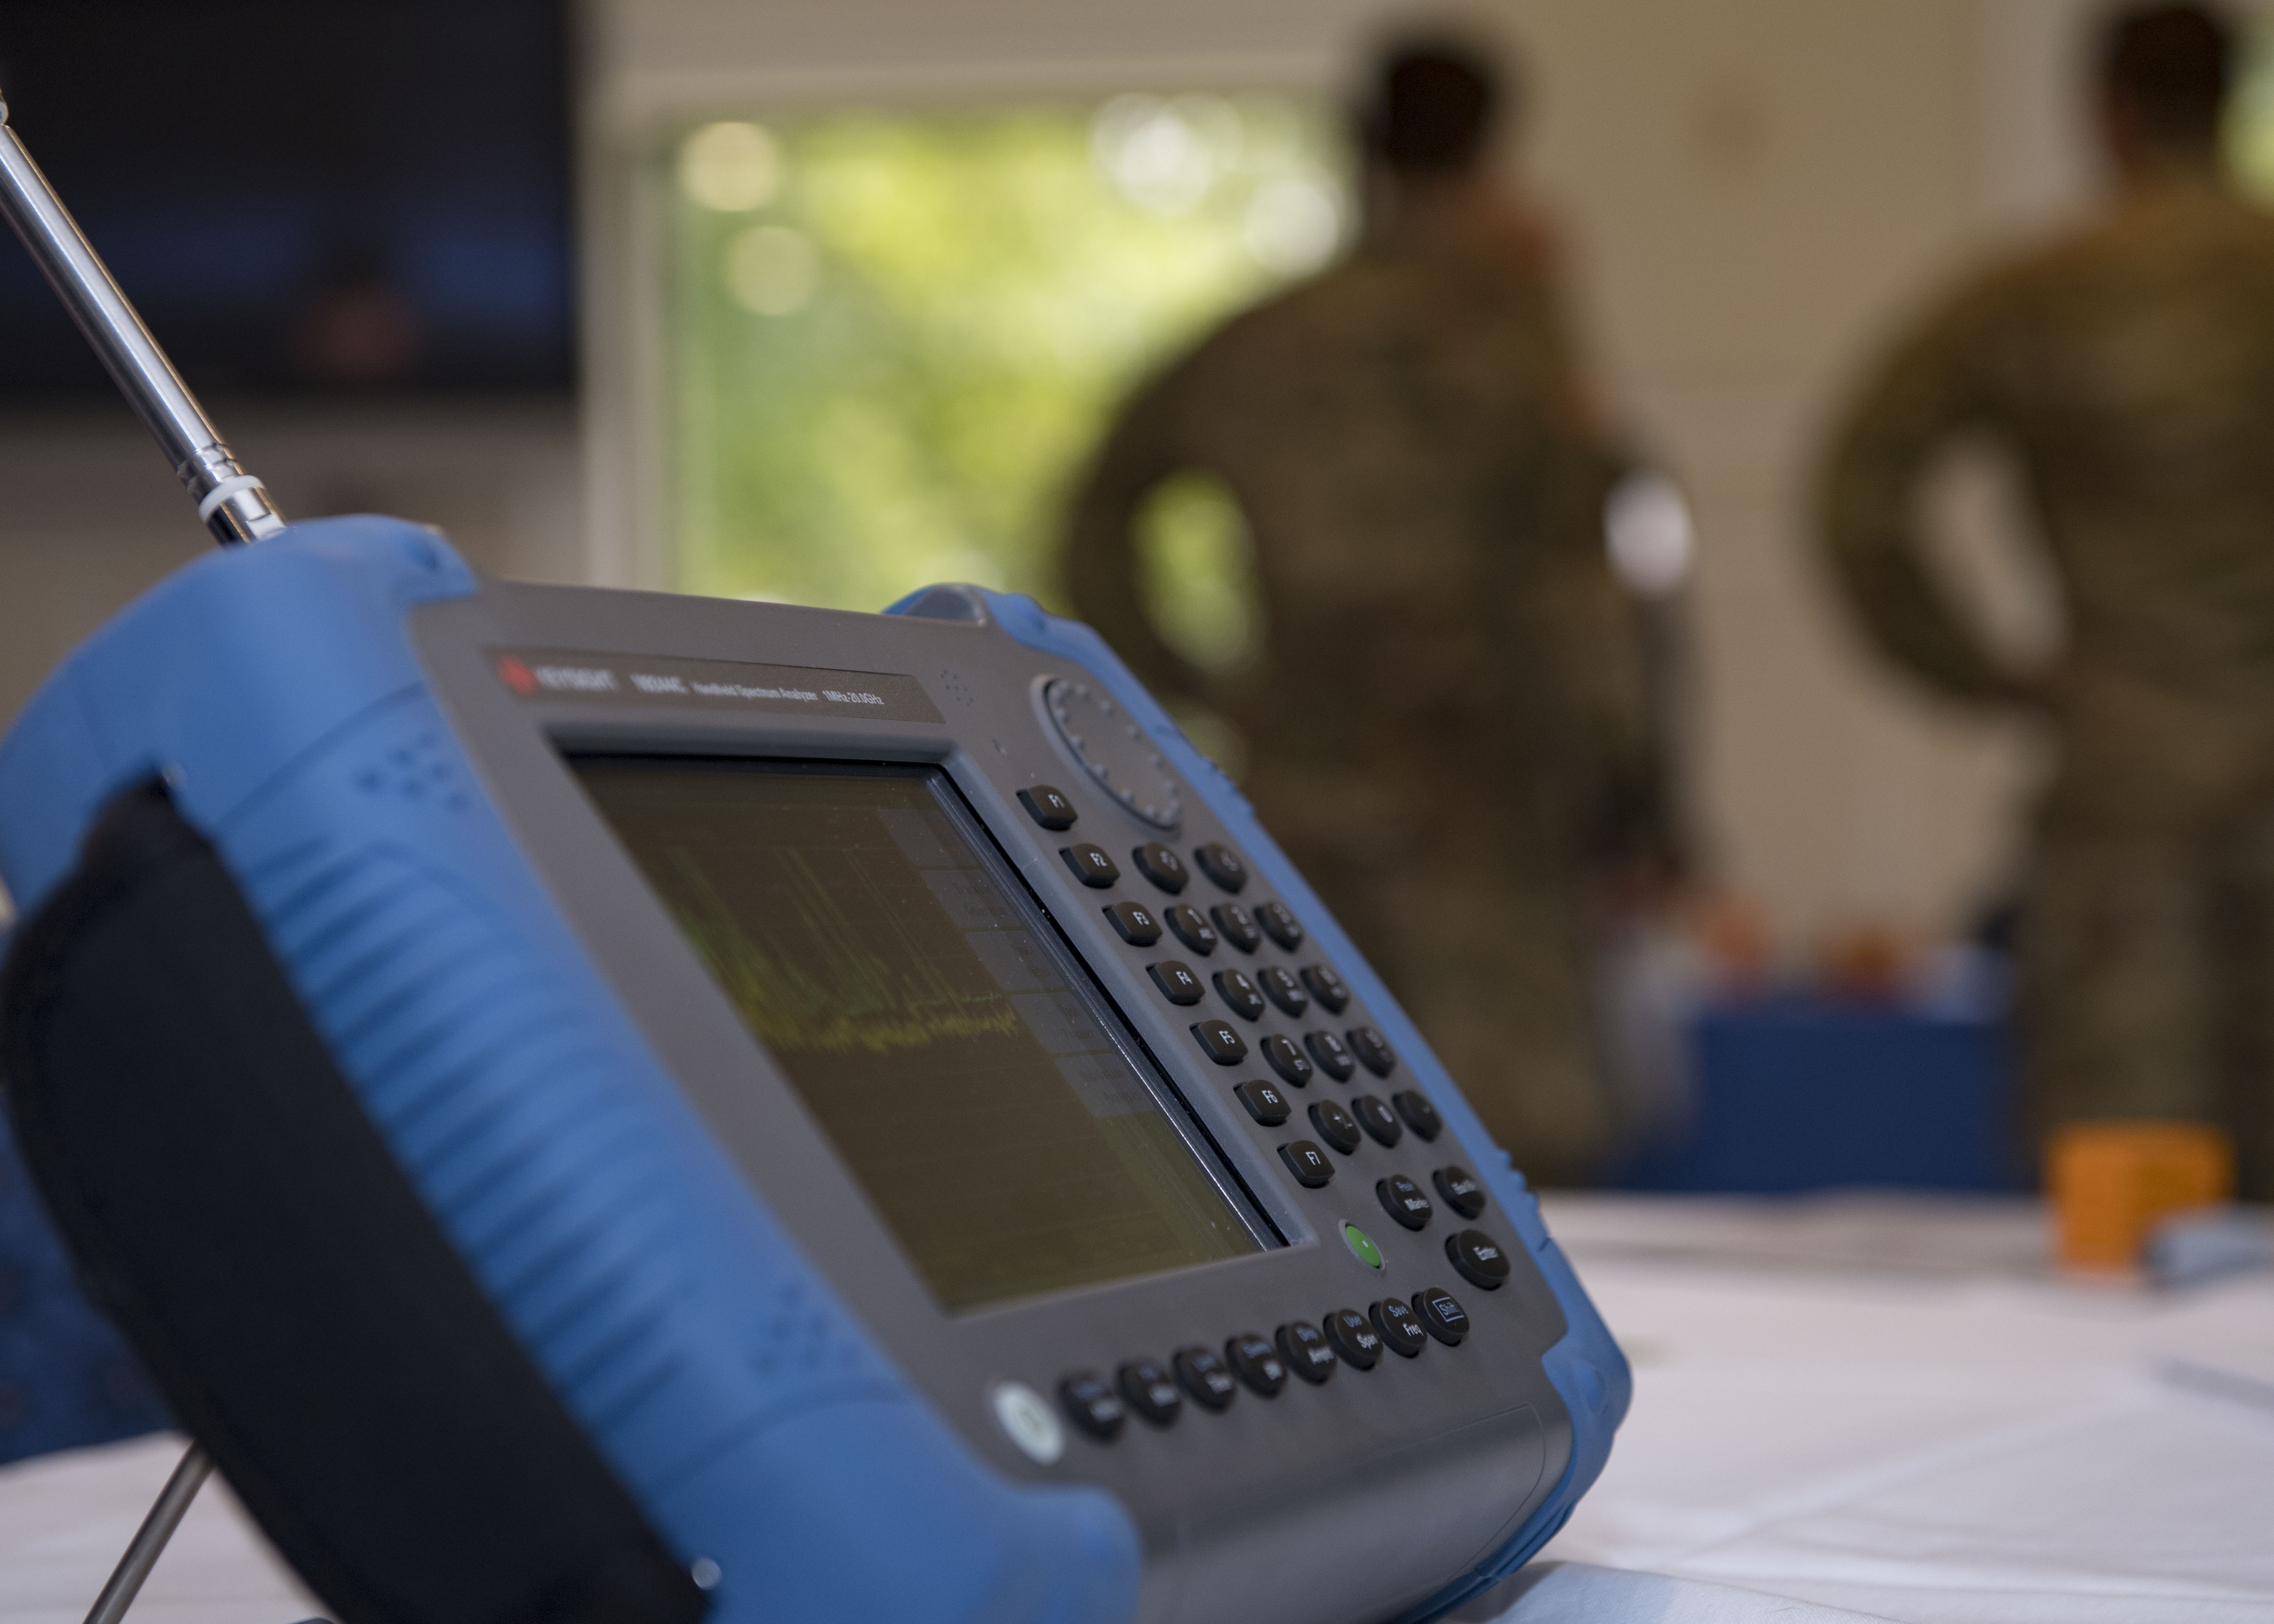 Tactical and Tech Day Expo: a network of possibilities